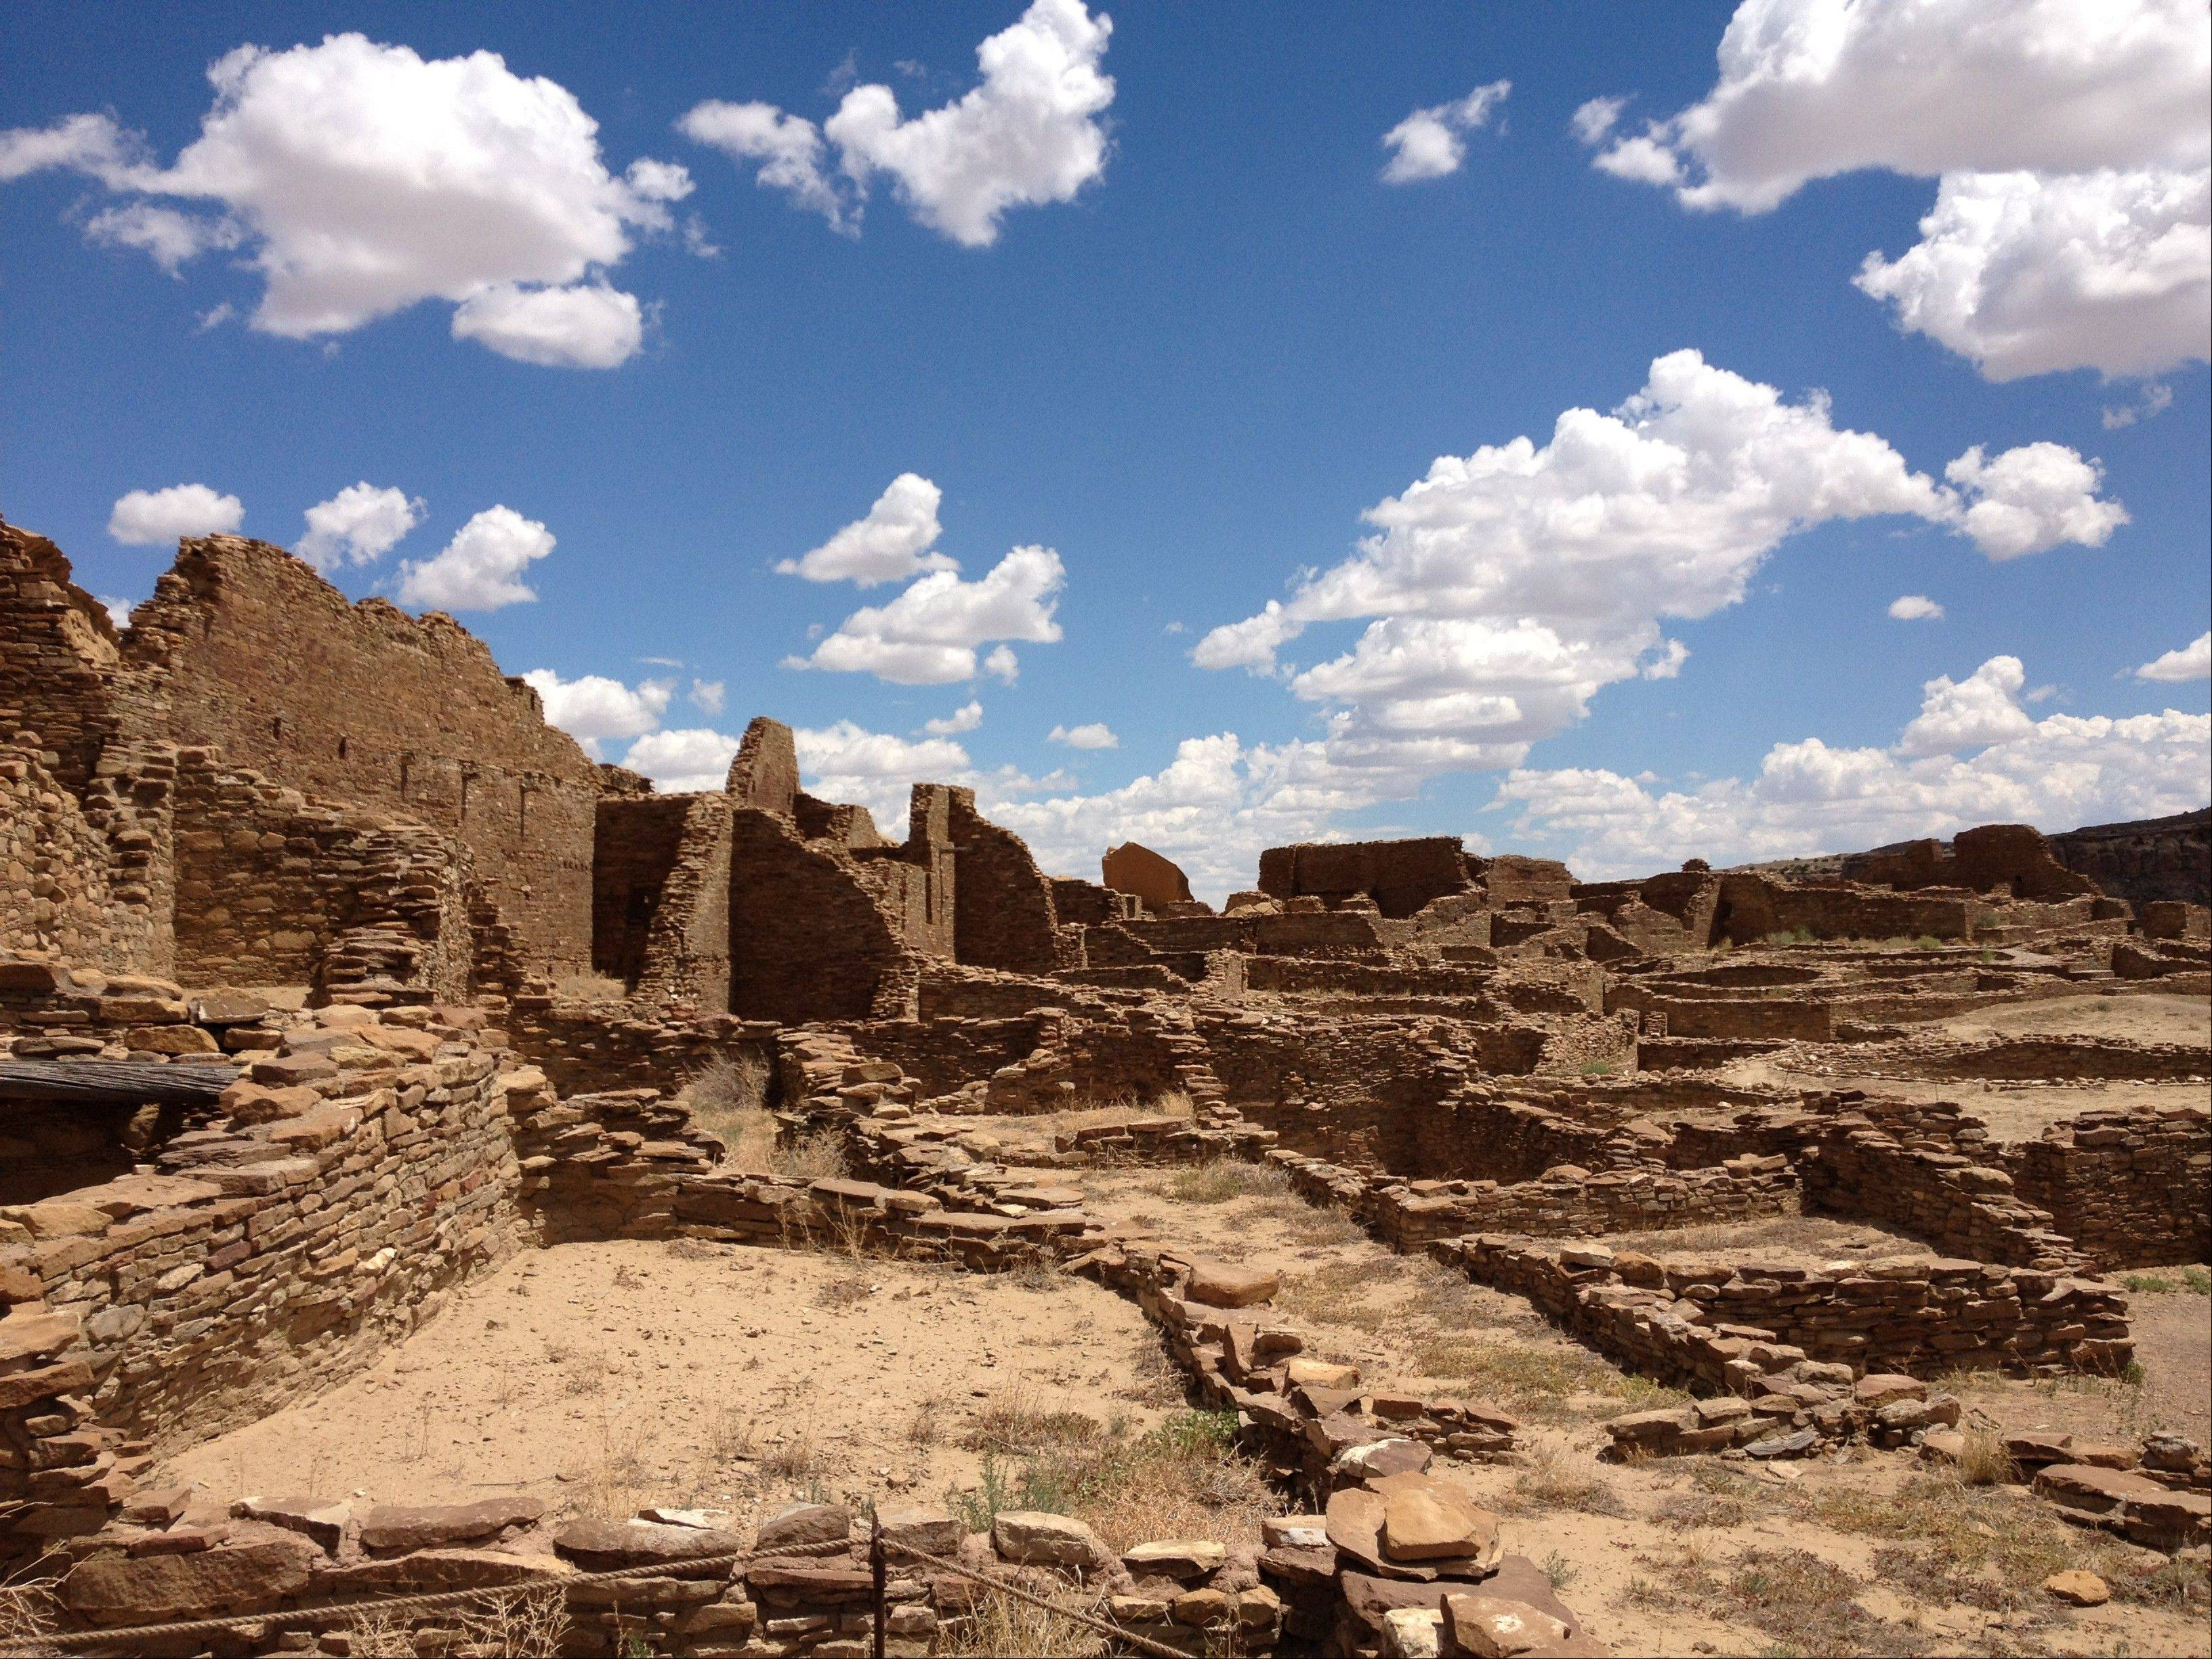 Chaco Canyon, in northwestern New Mexico, is the center of a culture that flourished from the 800s to the 1100s.